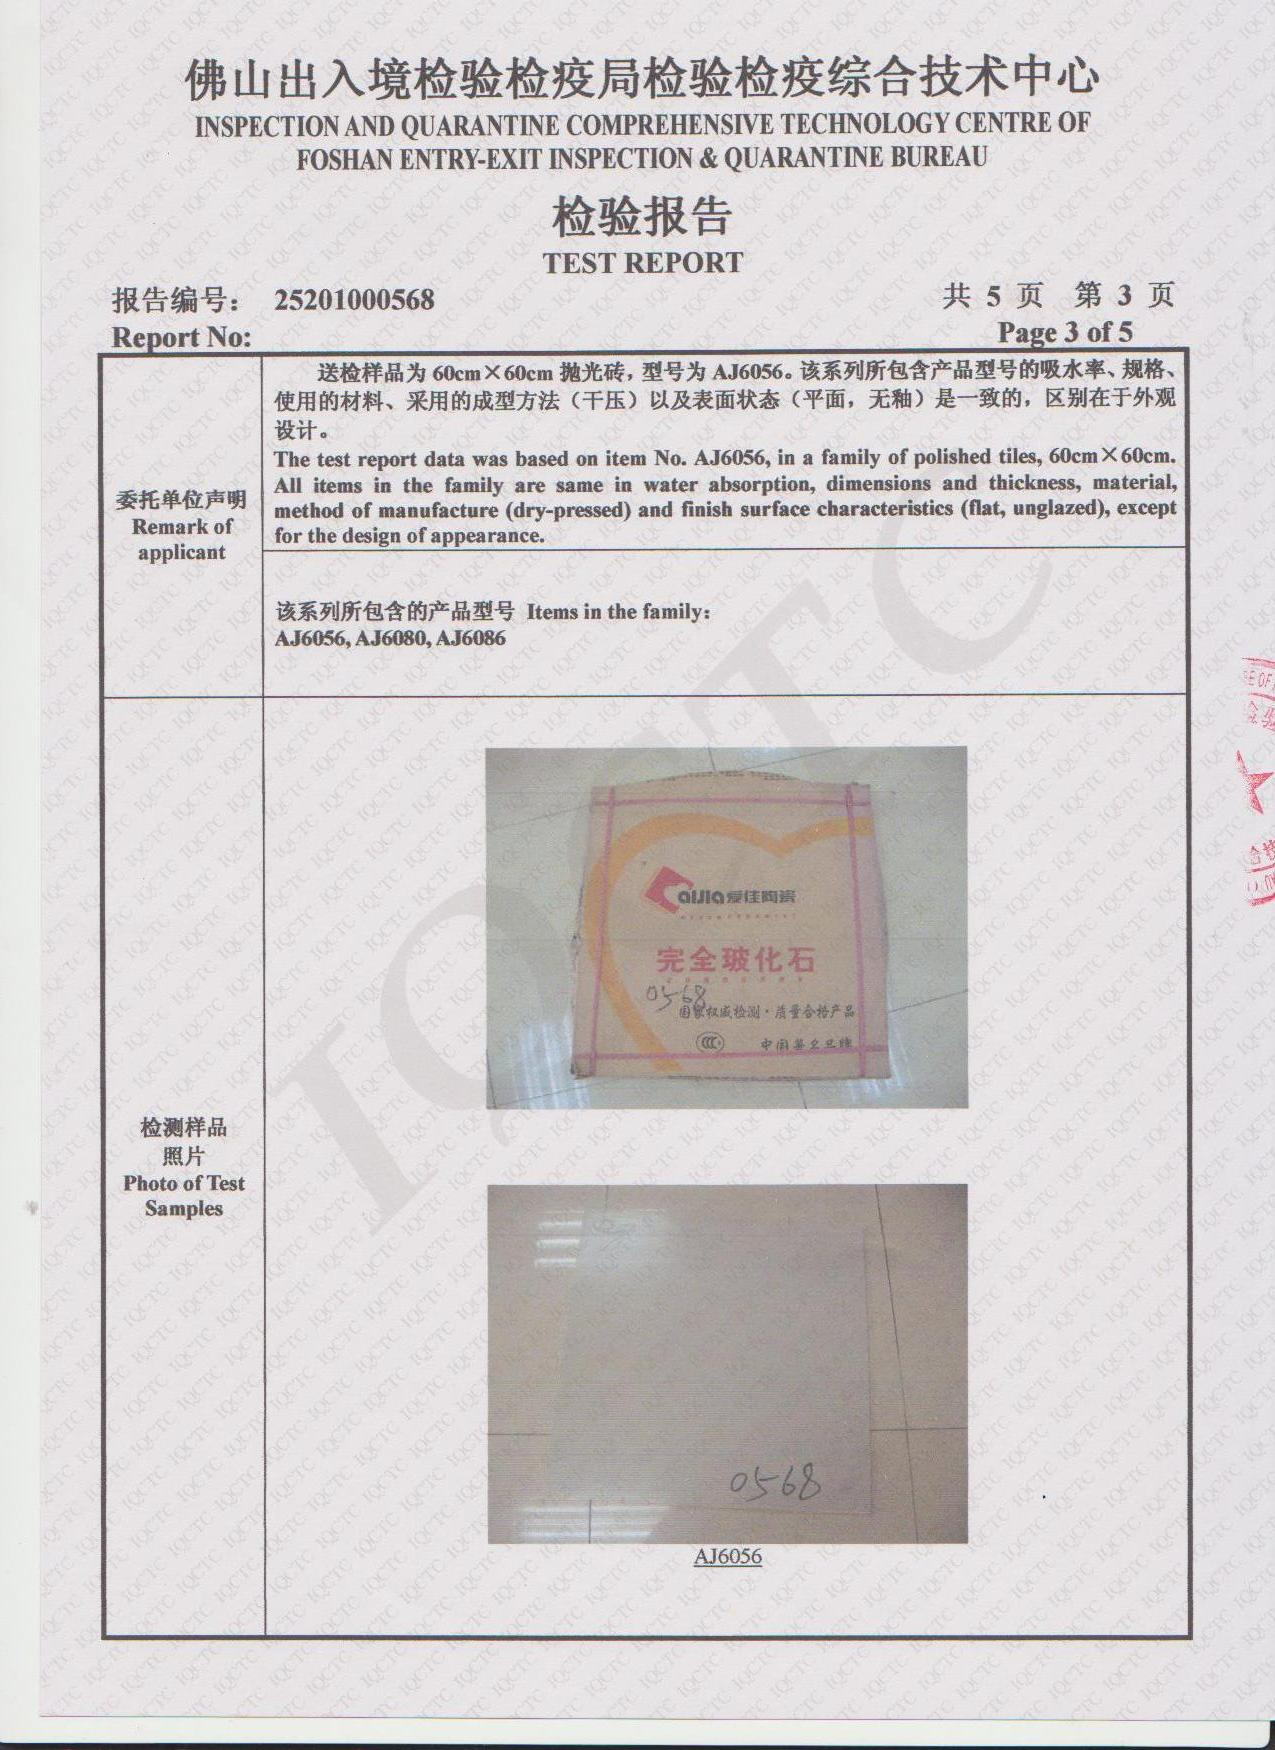 Certification of Test Report